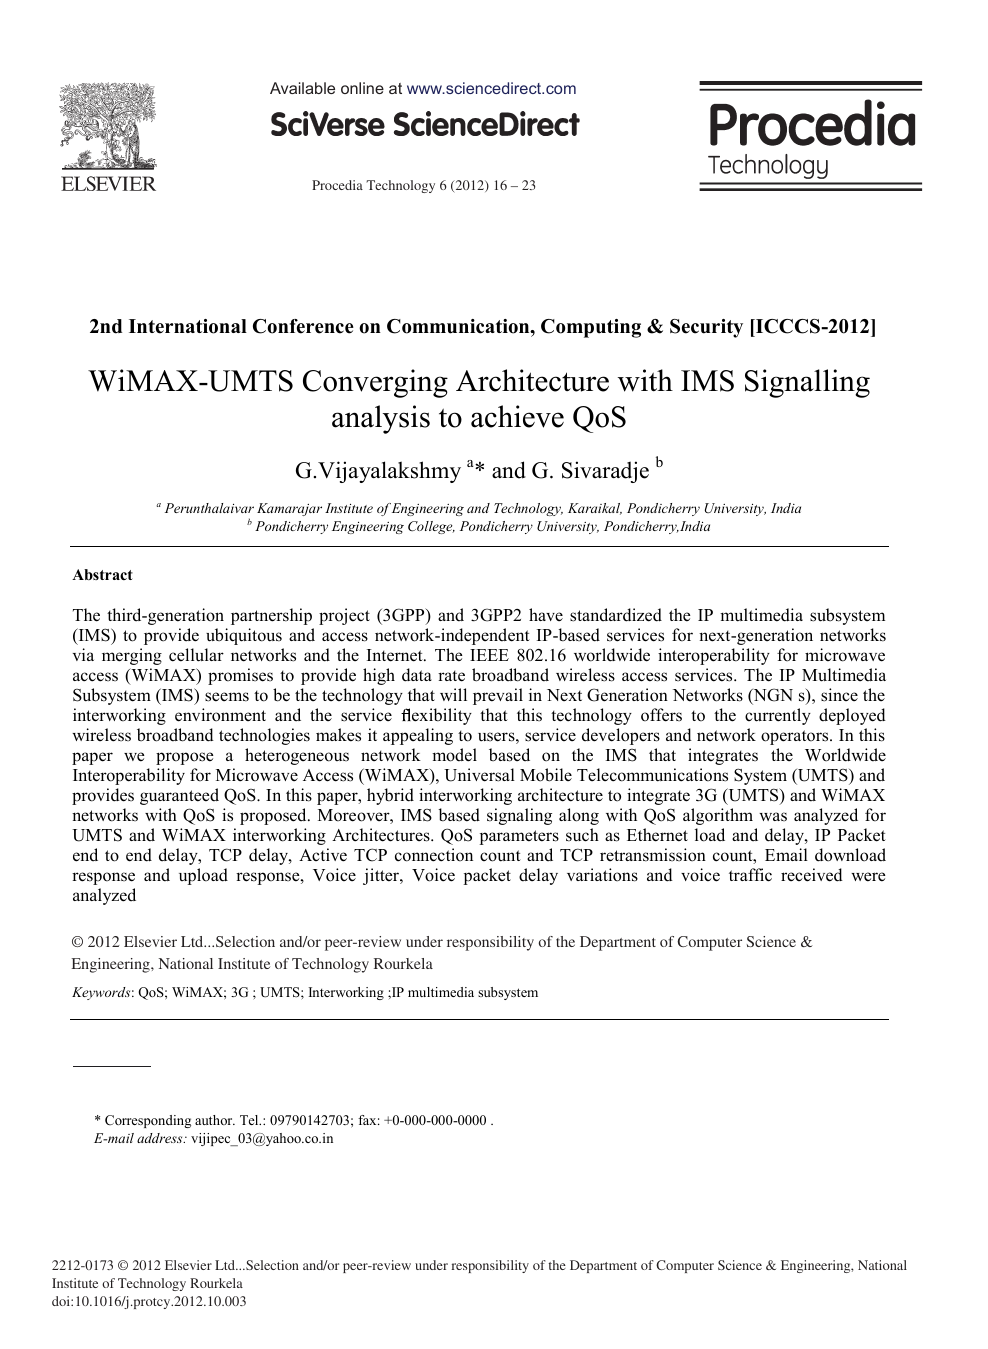 WiMAX-UMTS Converging Architecture with IMS Signalling